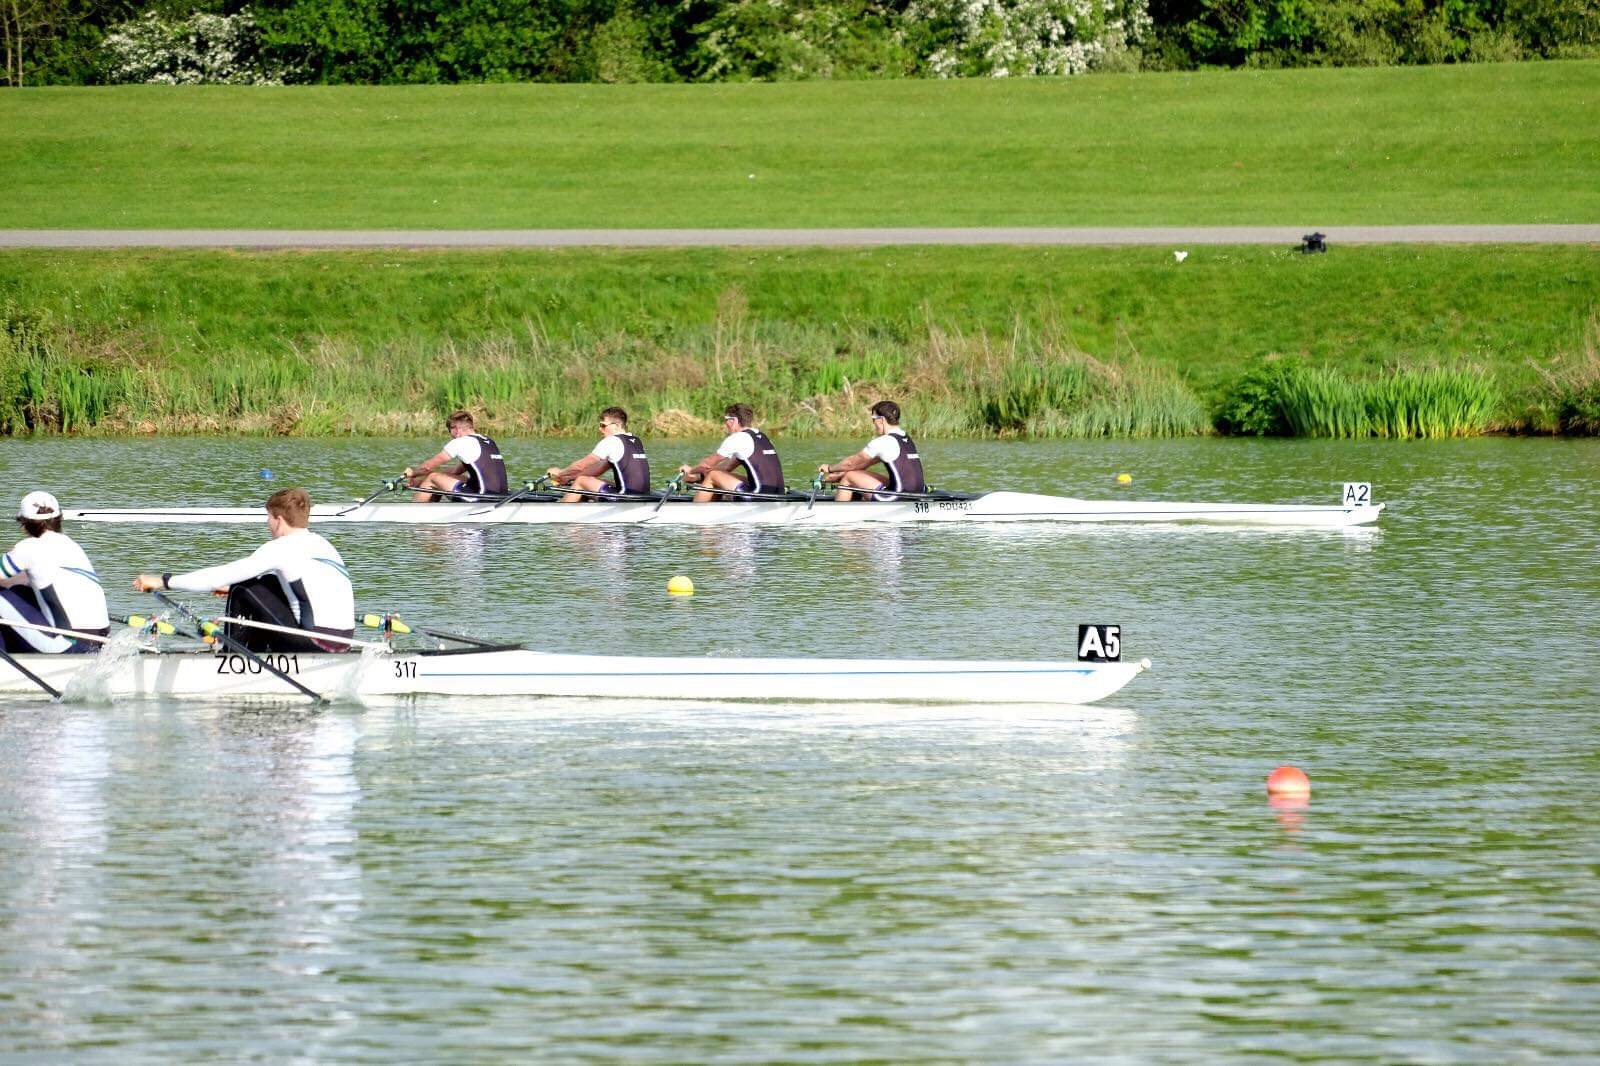 The Men's Championship 4x: George, Sean, Luke and Ed